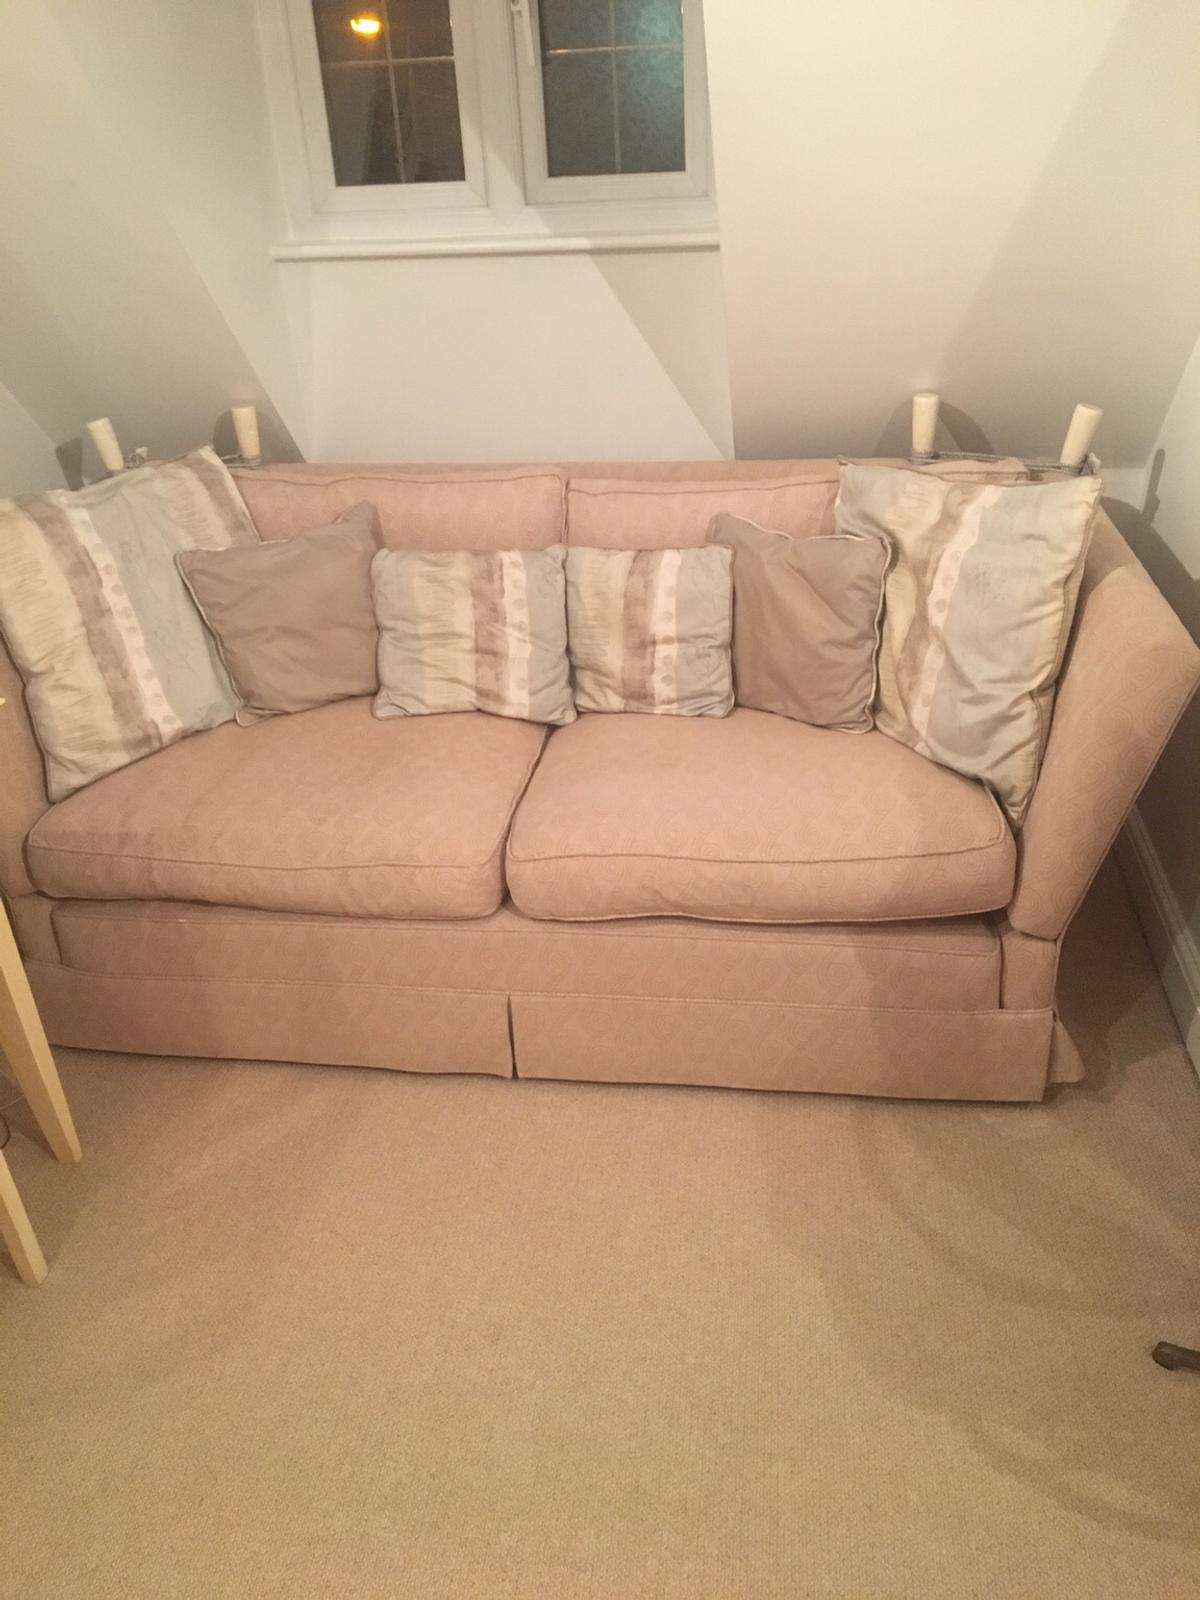 Laura Ashley drop-arm large two seater sofas